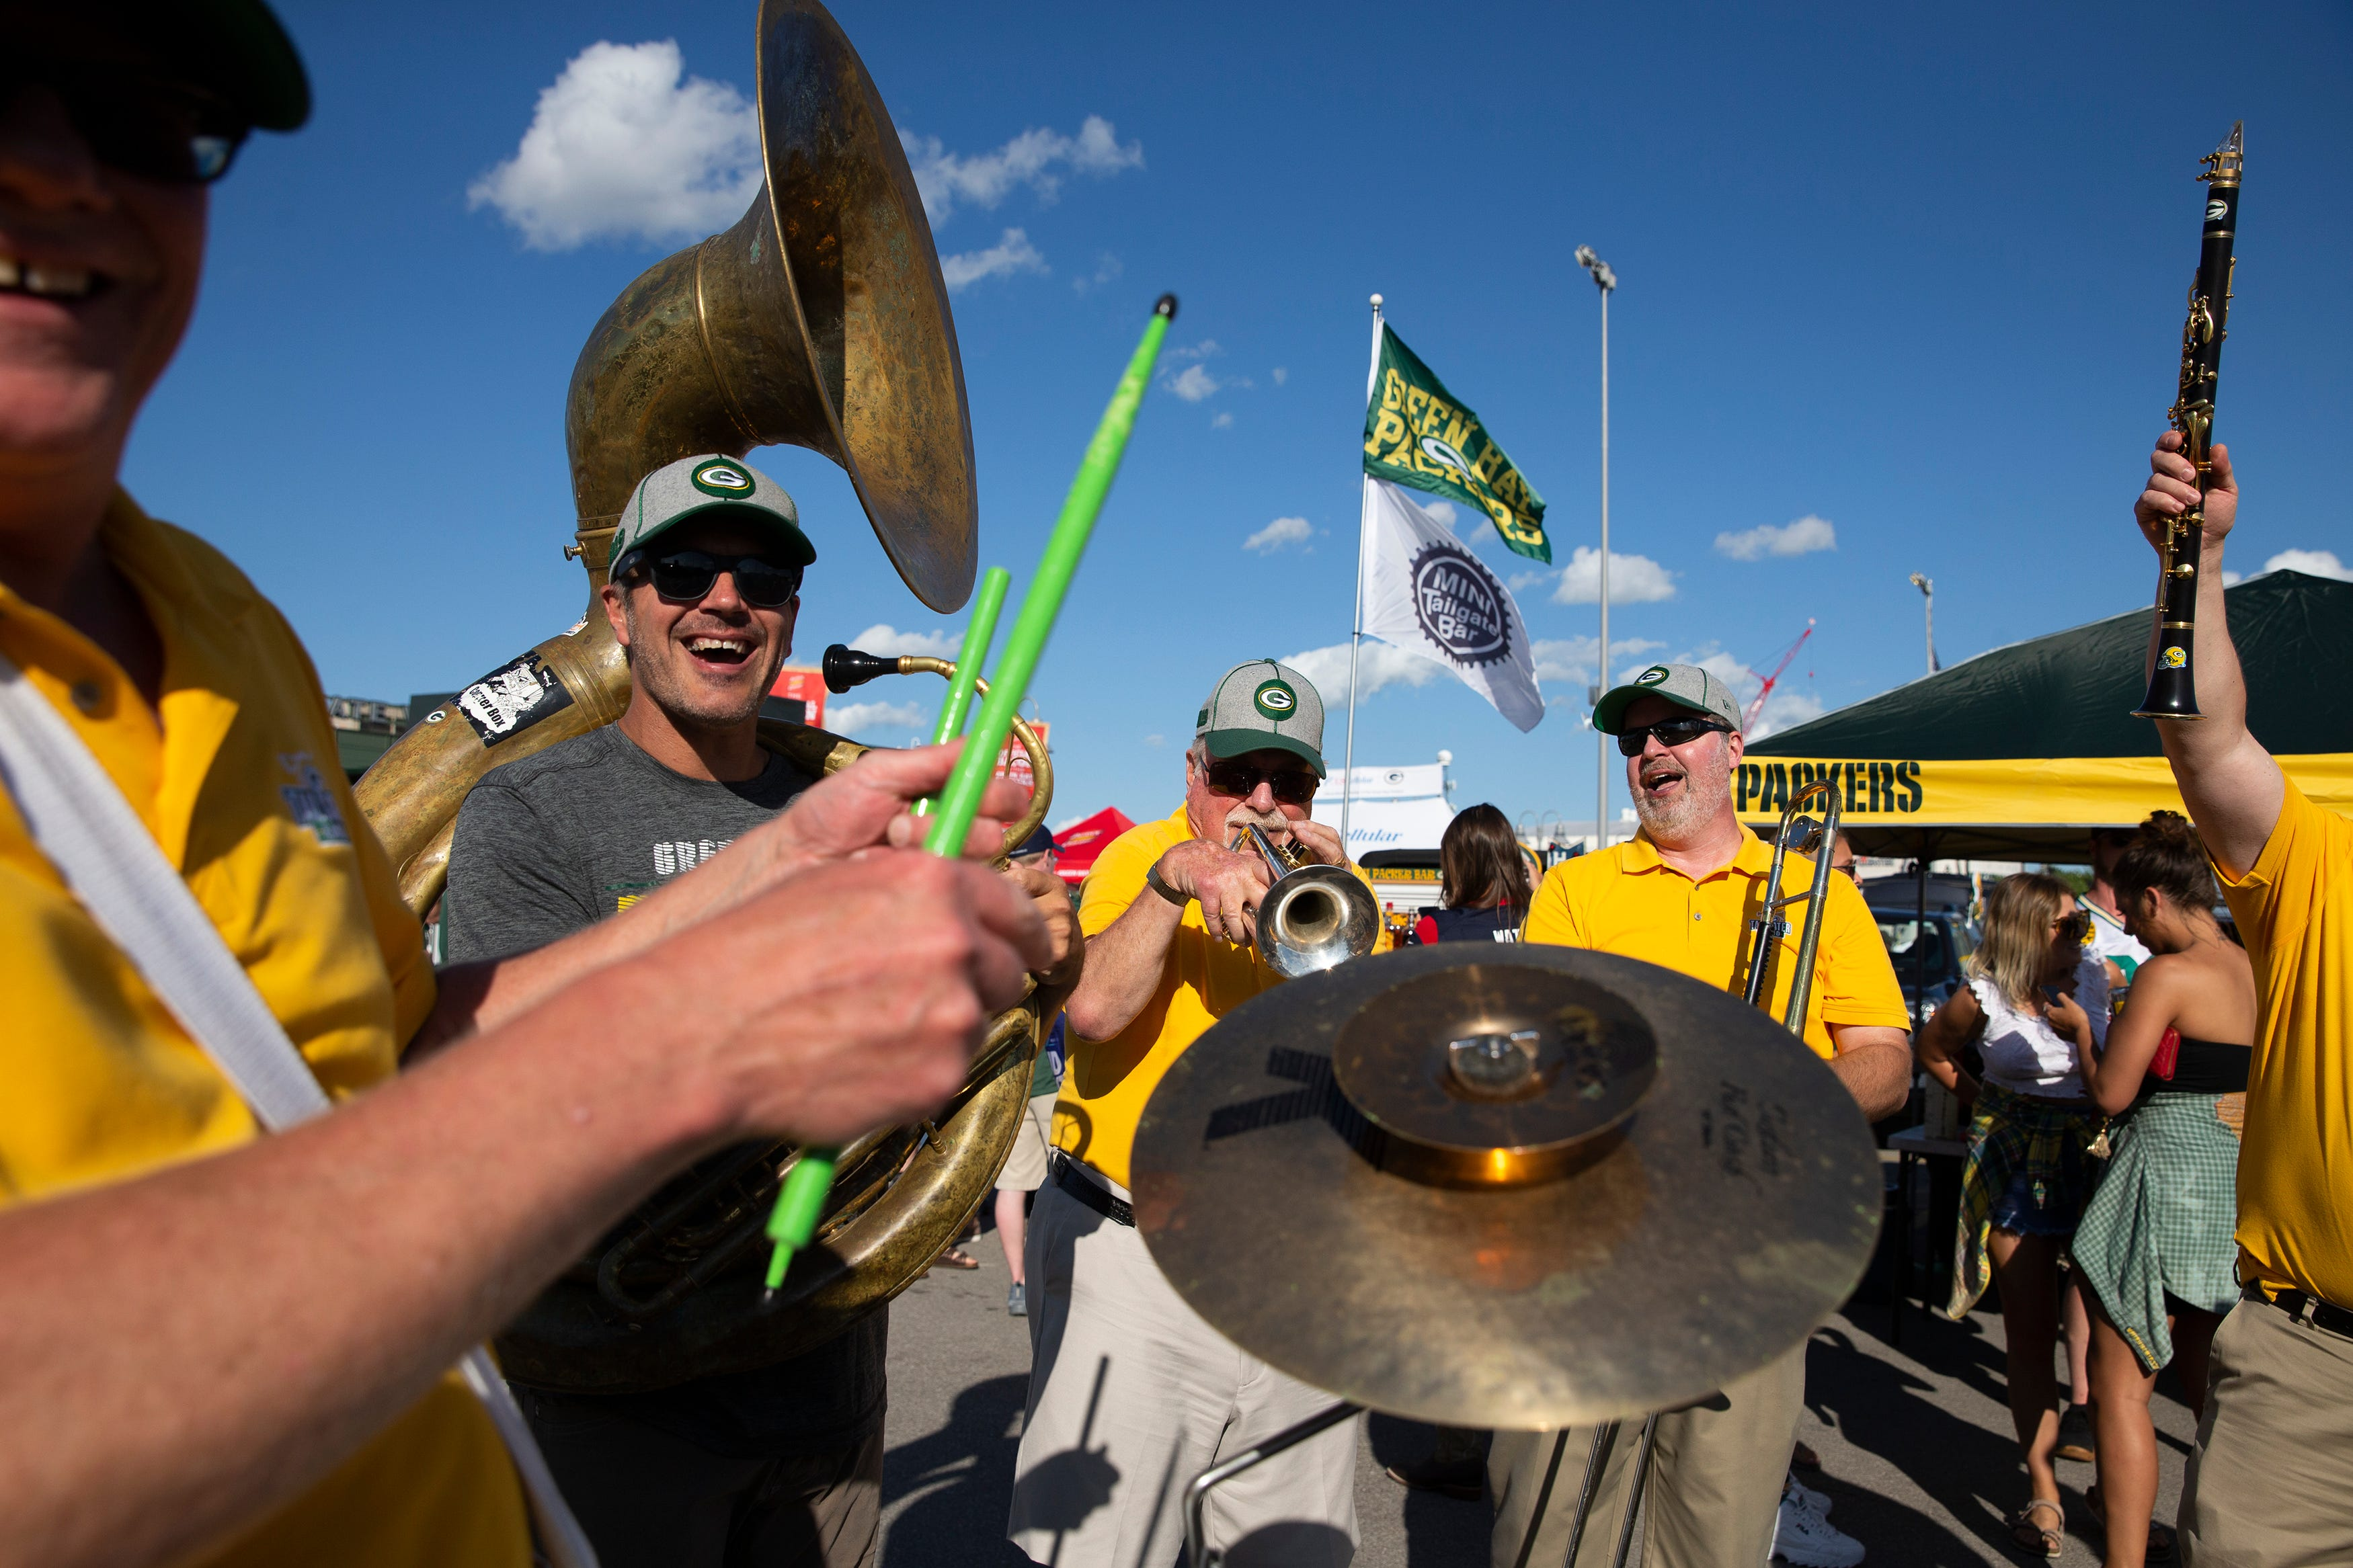 Packers Tailgaters Band